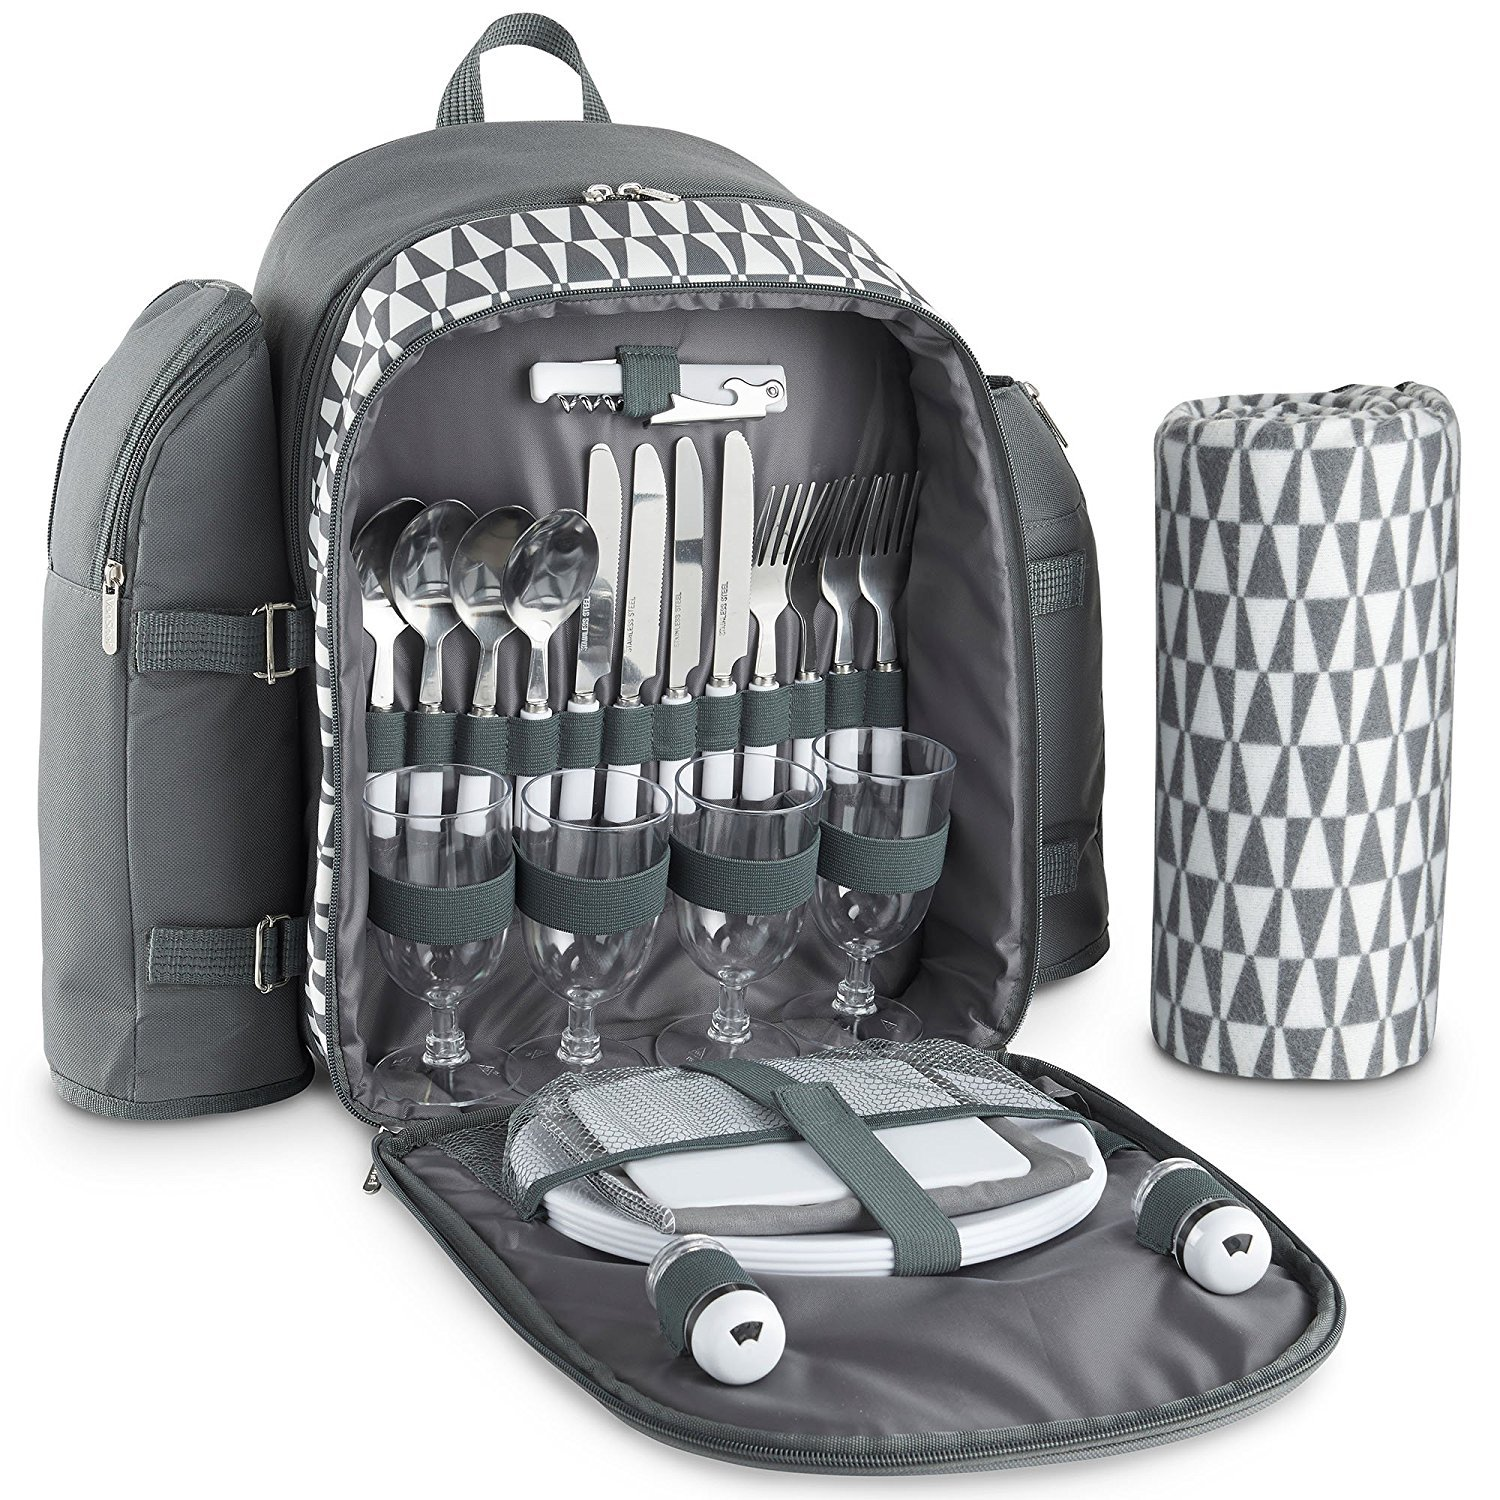 VonShef 4 Person Outdoor Picnic Backpack Bag Set with Blanket - Includes 29 Piece Dining Set & Insulated Cooler Compartment to Keep Food Chilled for Longer - Gray by VonShef